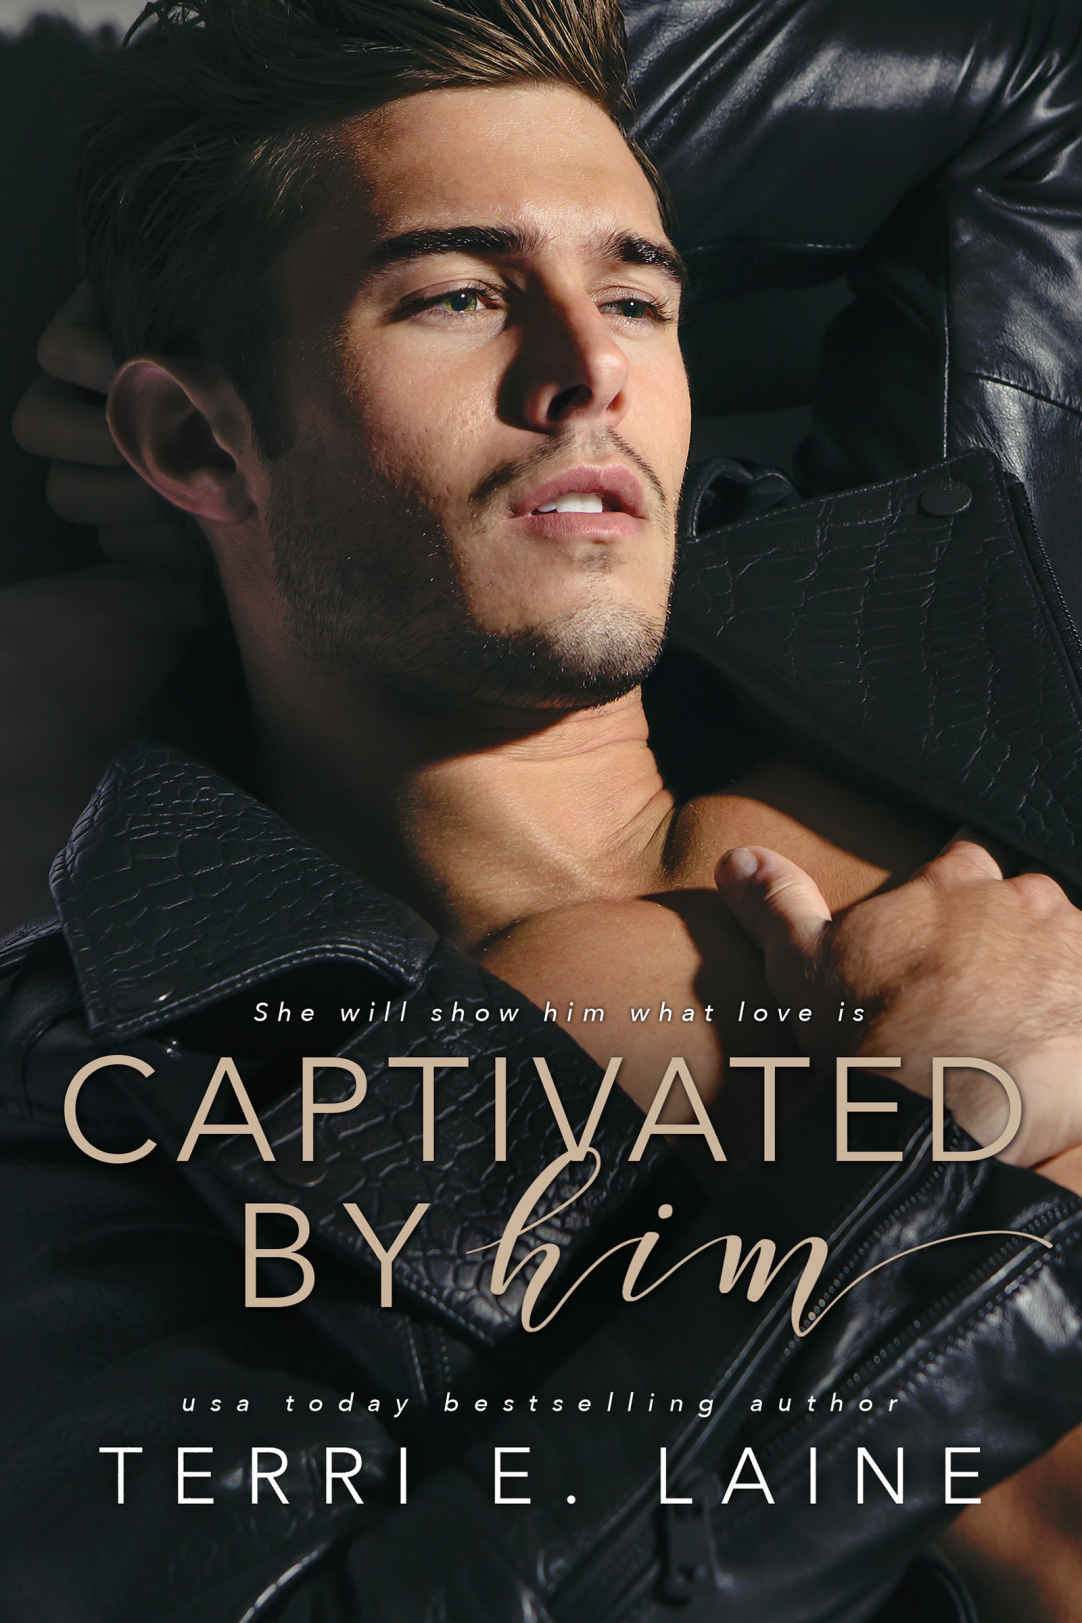 Captivated by Him - By Terri E. Laine